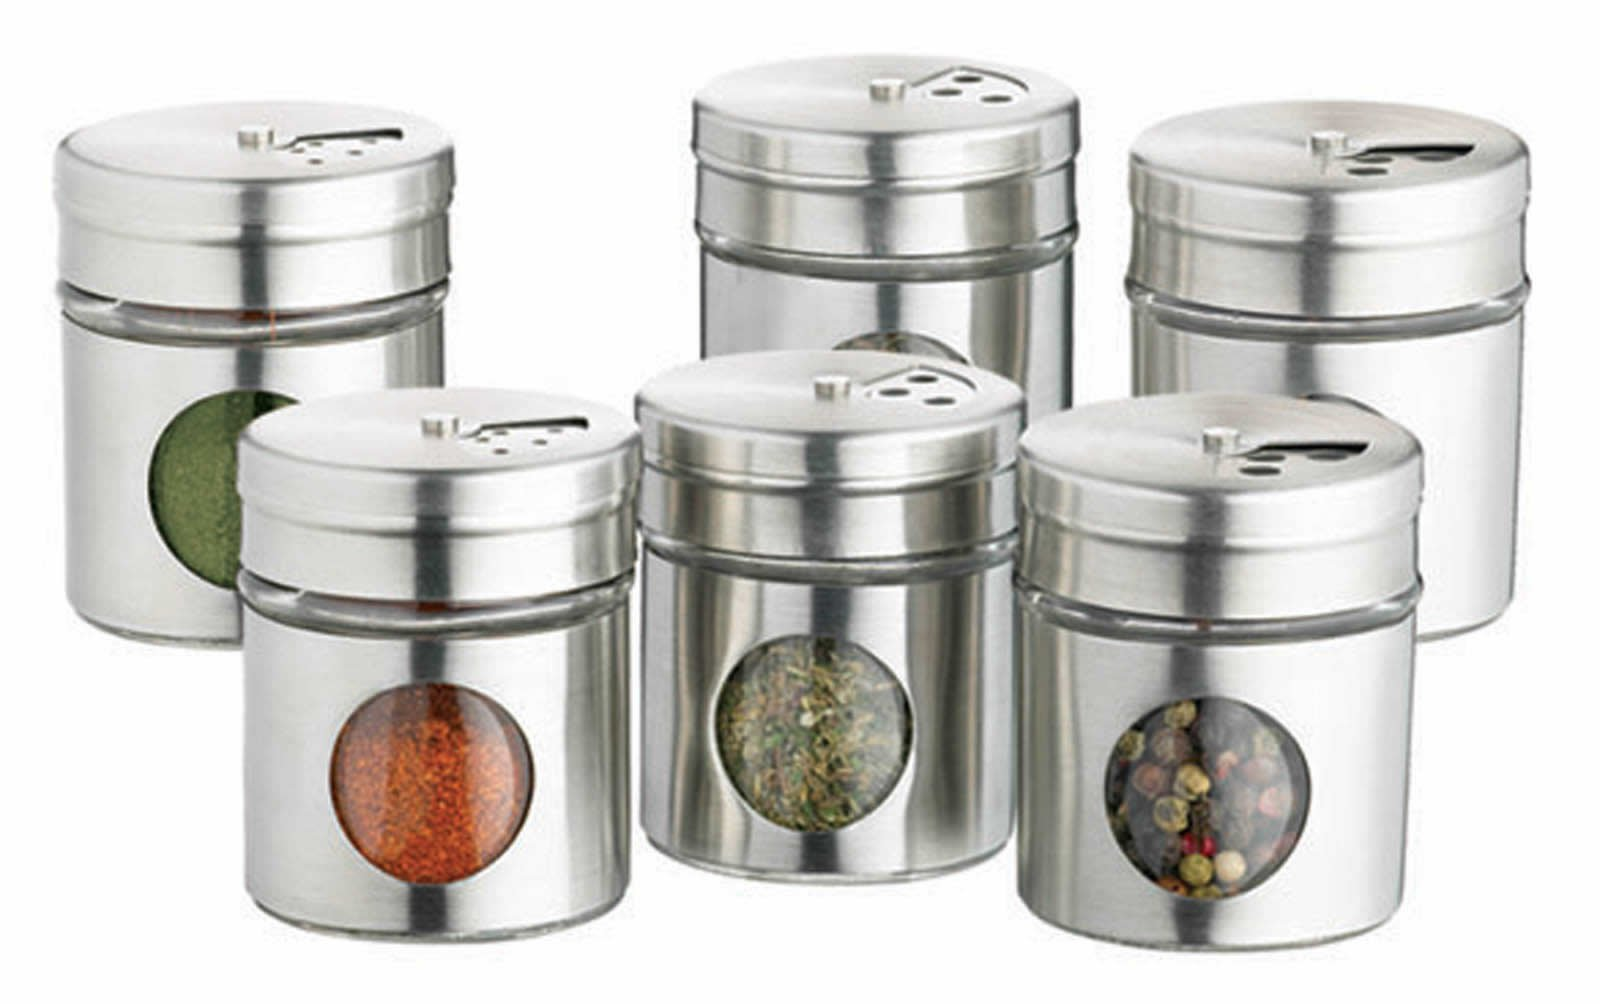 home made set of  stainless steel spice jars stylish storage - home made set of  stainless steel spice jars